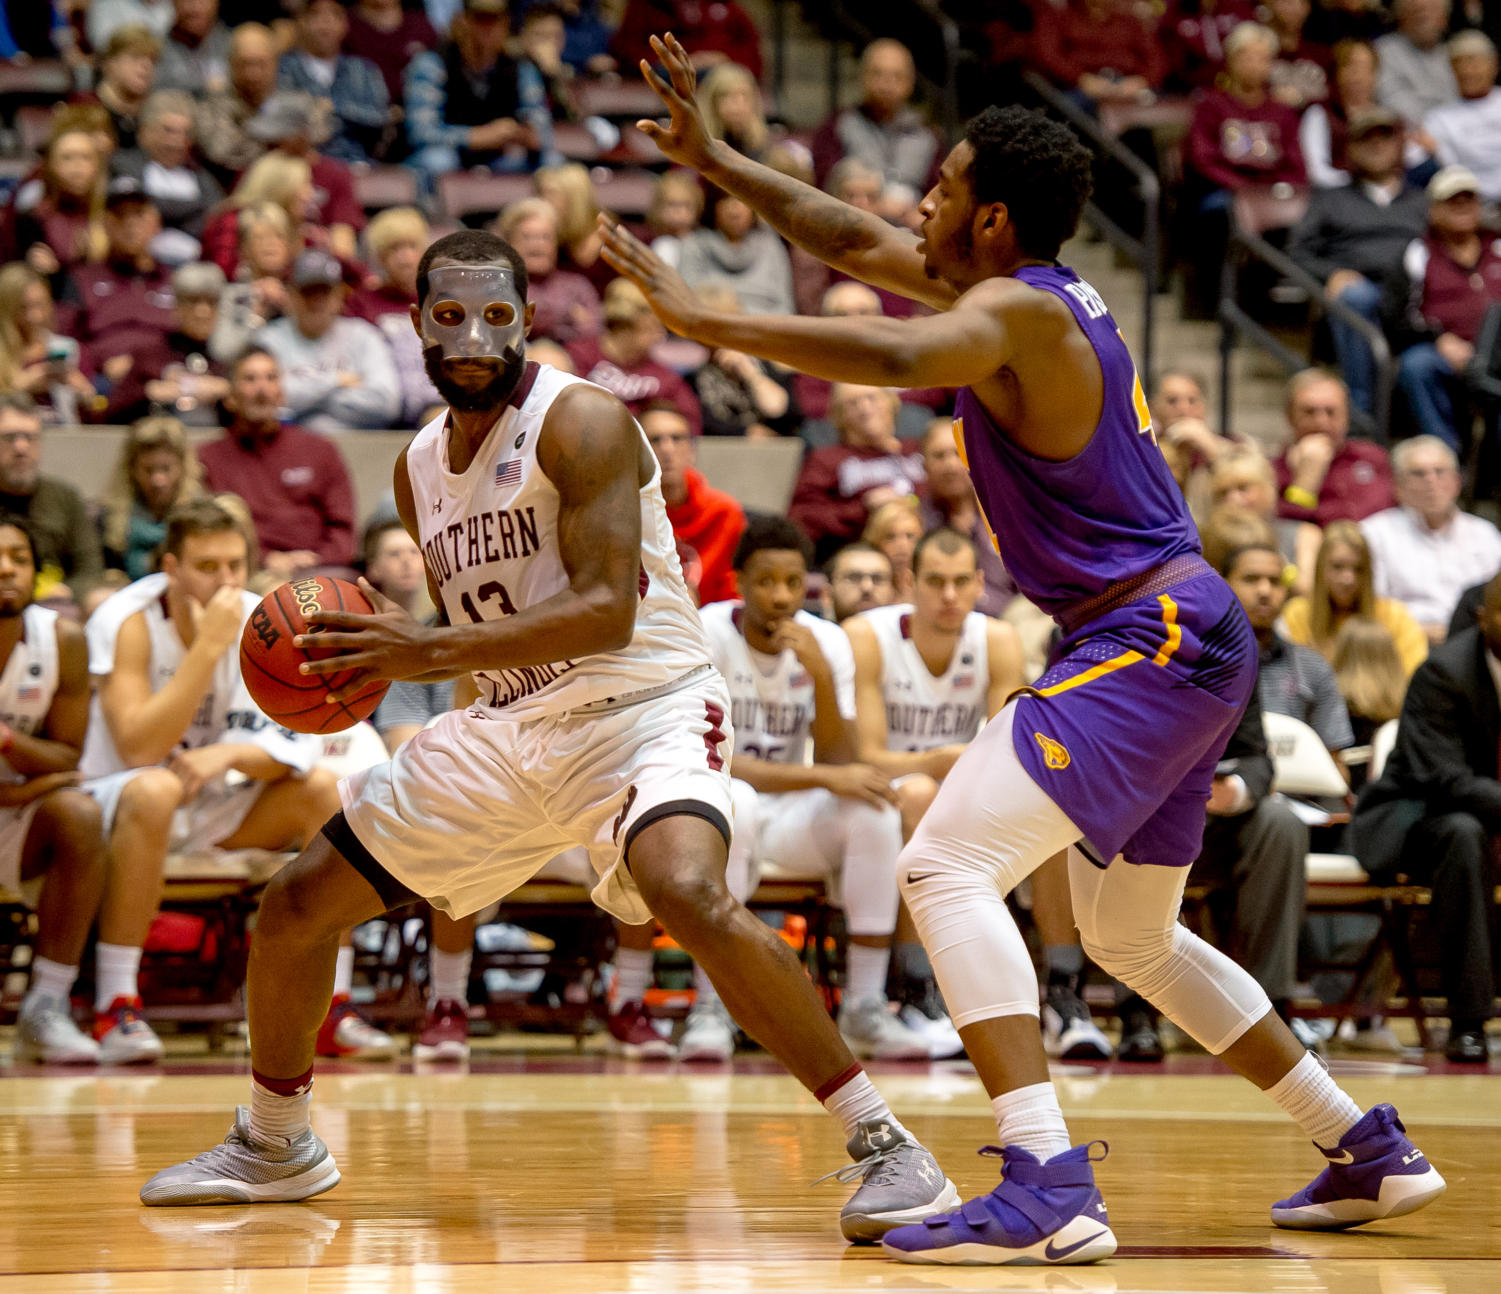 Junior+guard+Sean+Lloyd+Jr.+looks+to+pass+the+ball+Sunday%2C+Jan.+21%2C+2018%2C+during+the+Salukis%27+64-53+victory+over+the+University+of+Northern+Iowa+Panthers+at+SIU+Arena.+%28Brian+Munoz+%7C+%40BrianMMunoz%29